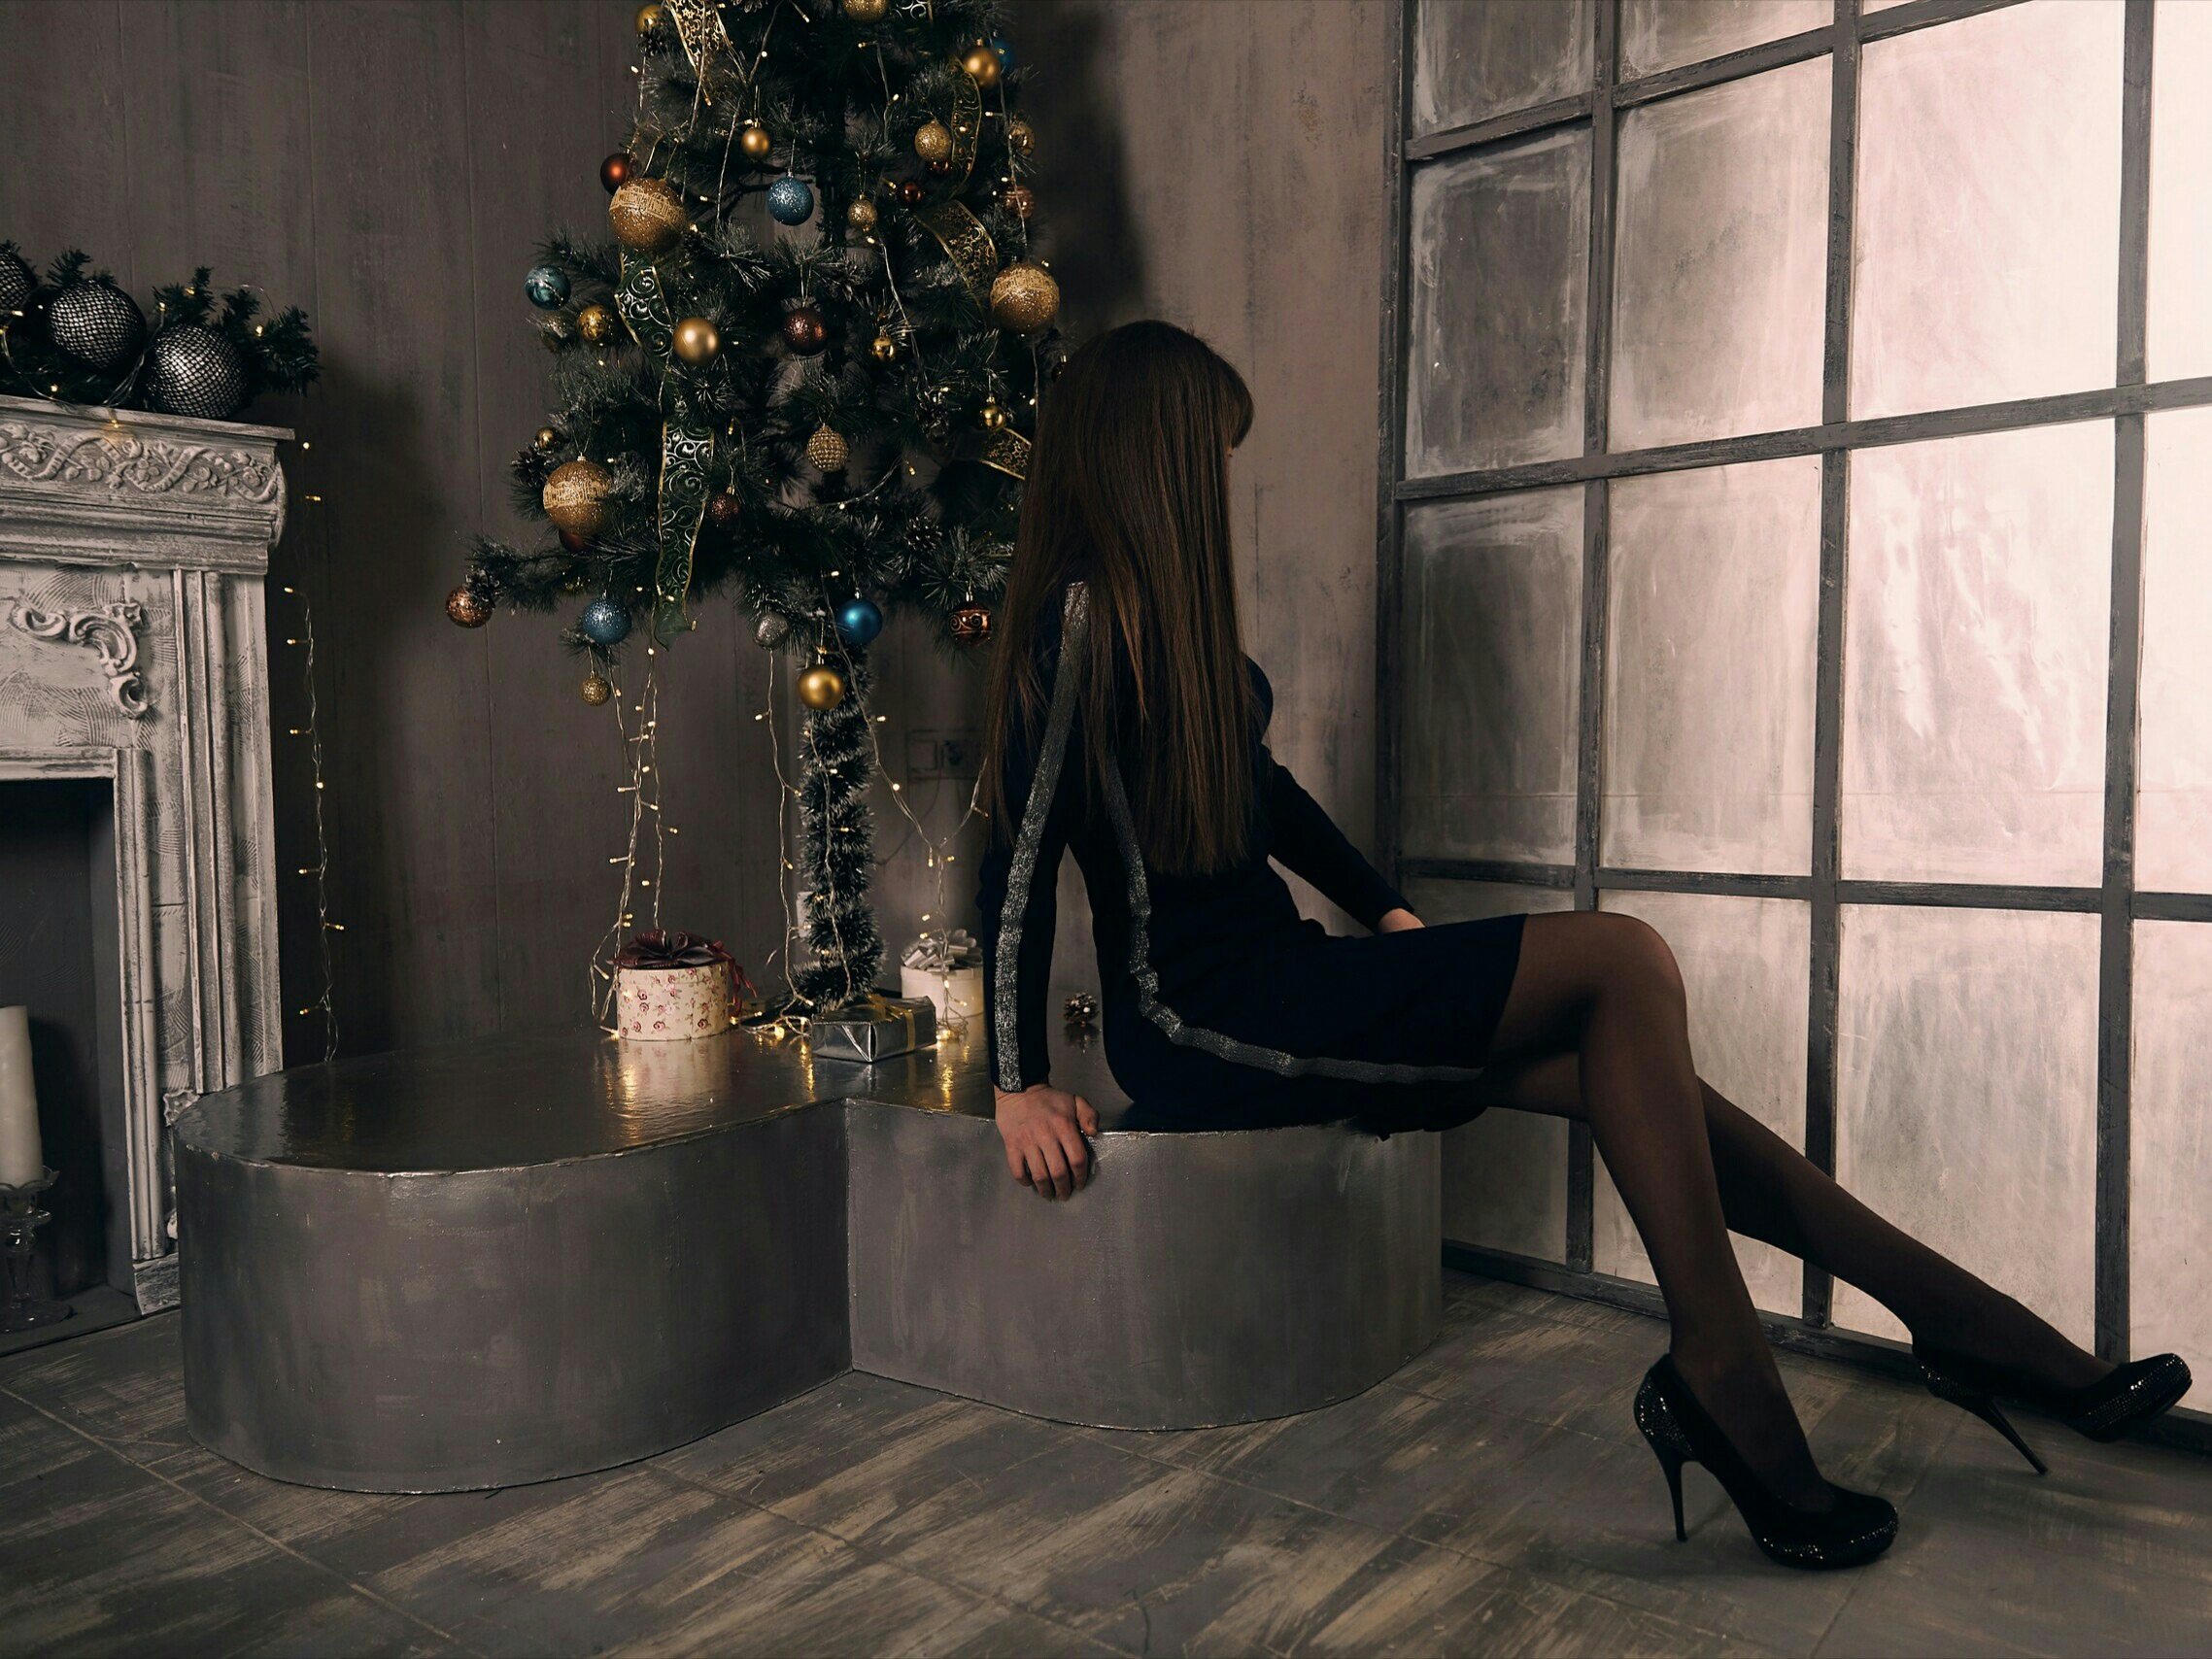 Saratov girl under the X-mas tree